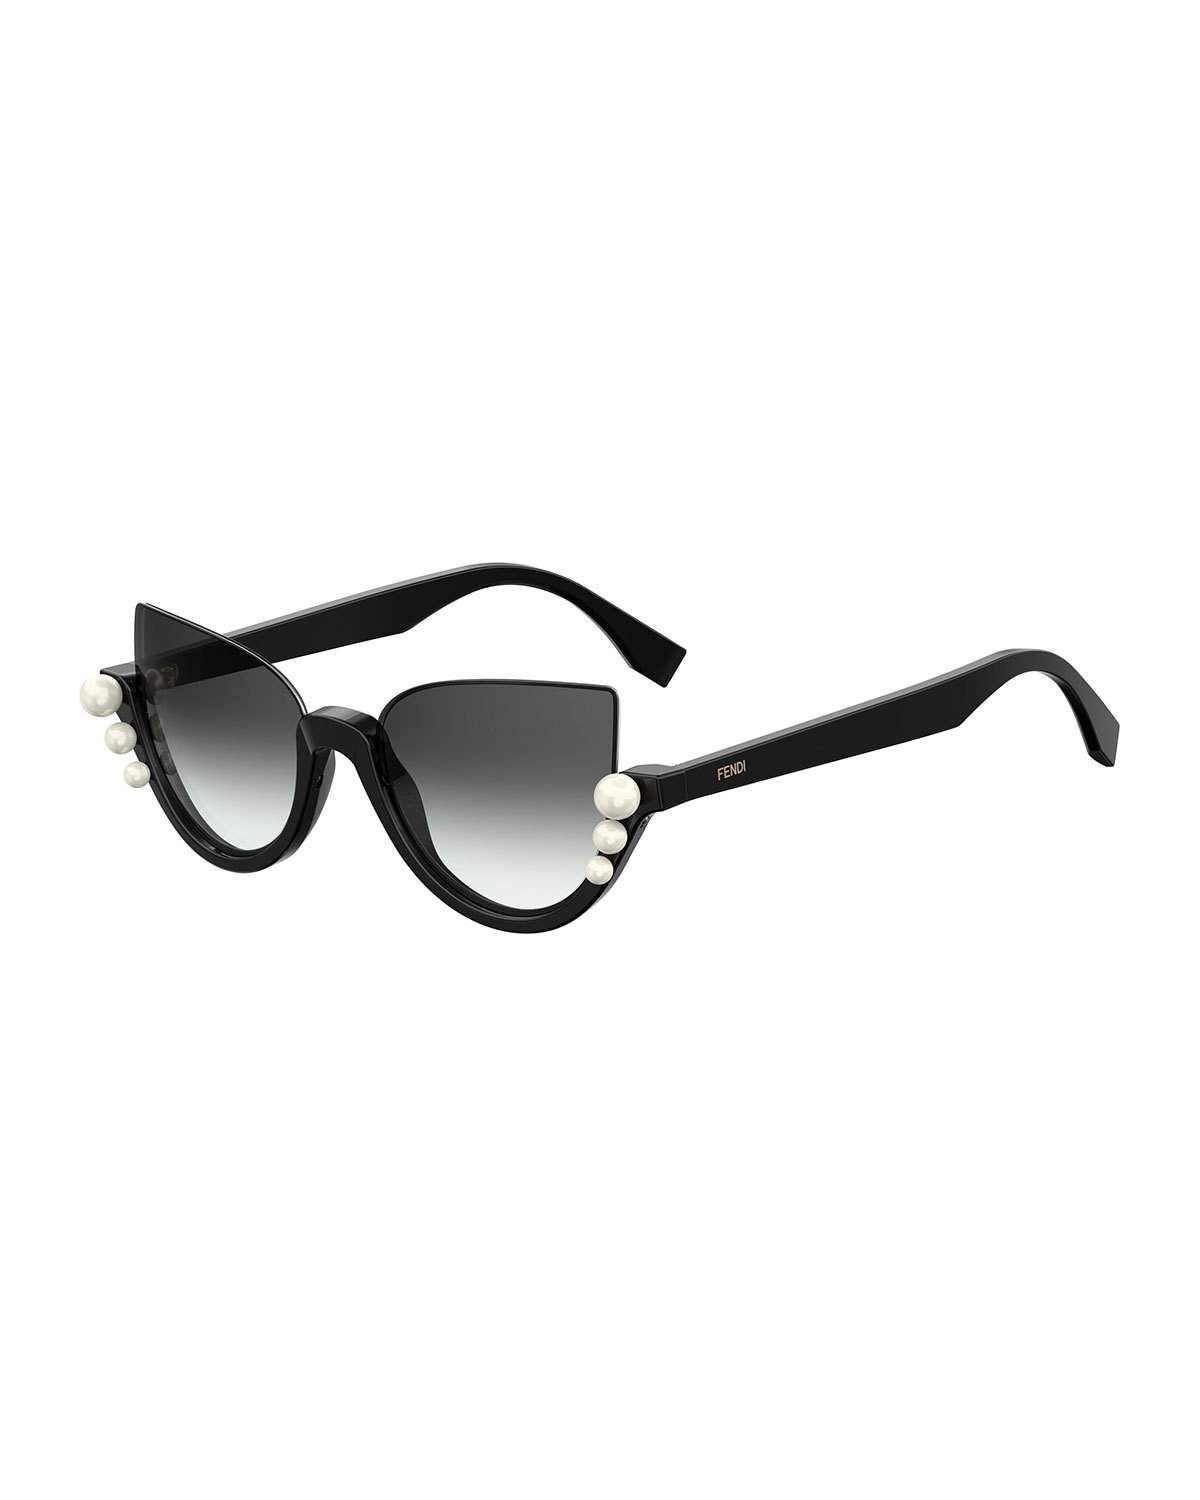 c767a4a7f56a1 Fendi Blink Half-Rim Pearl Cat-Eye Sunglasses in 2019